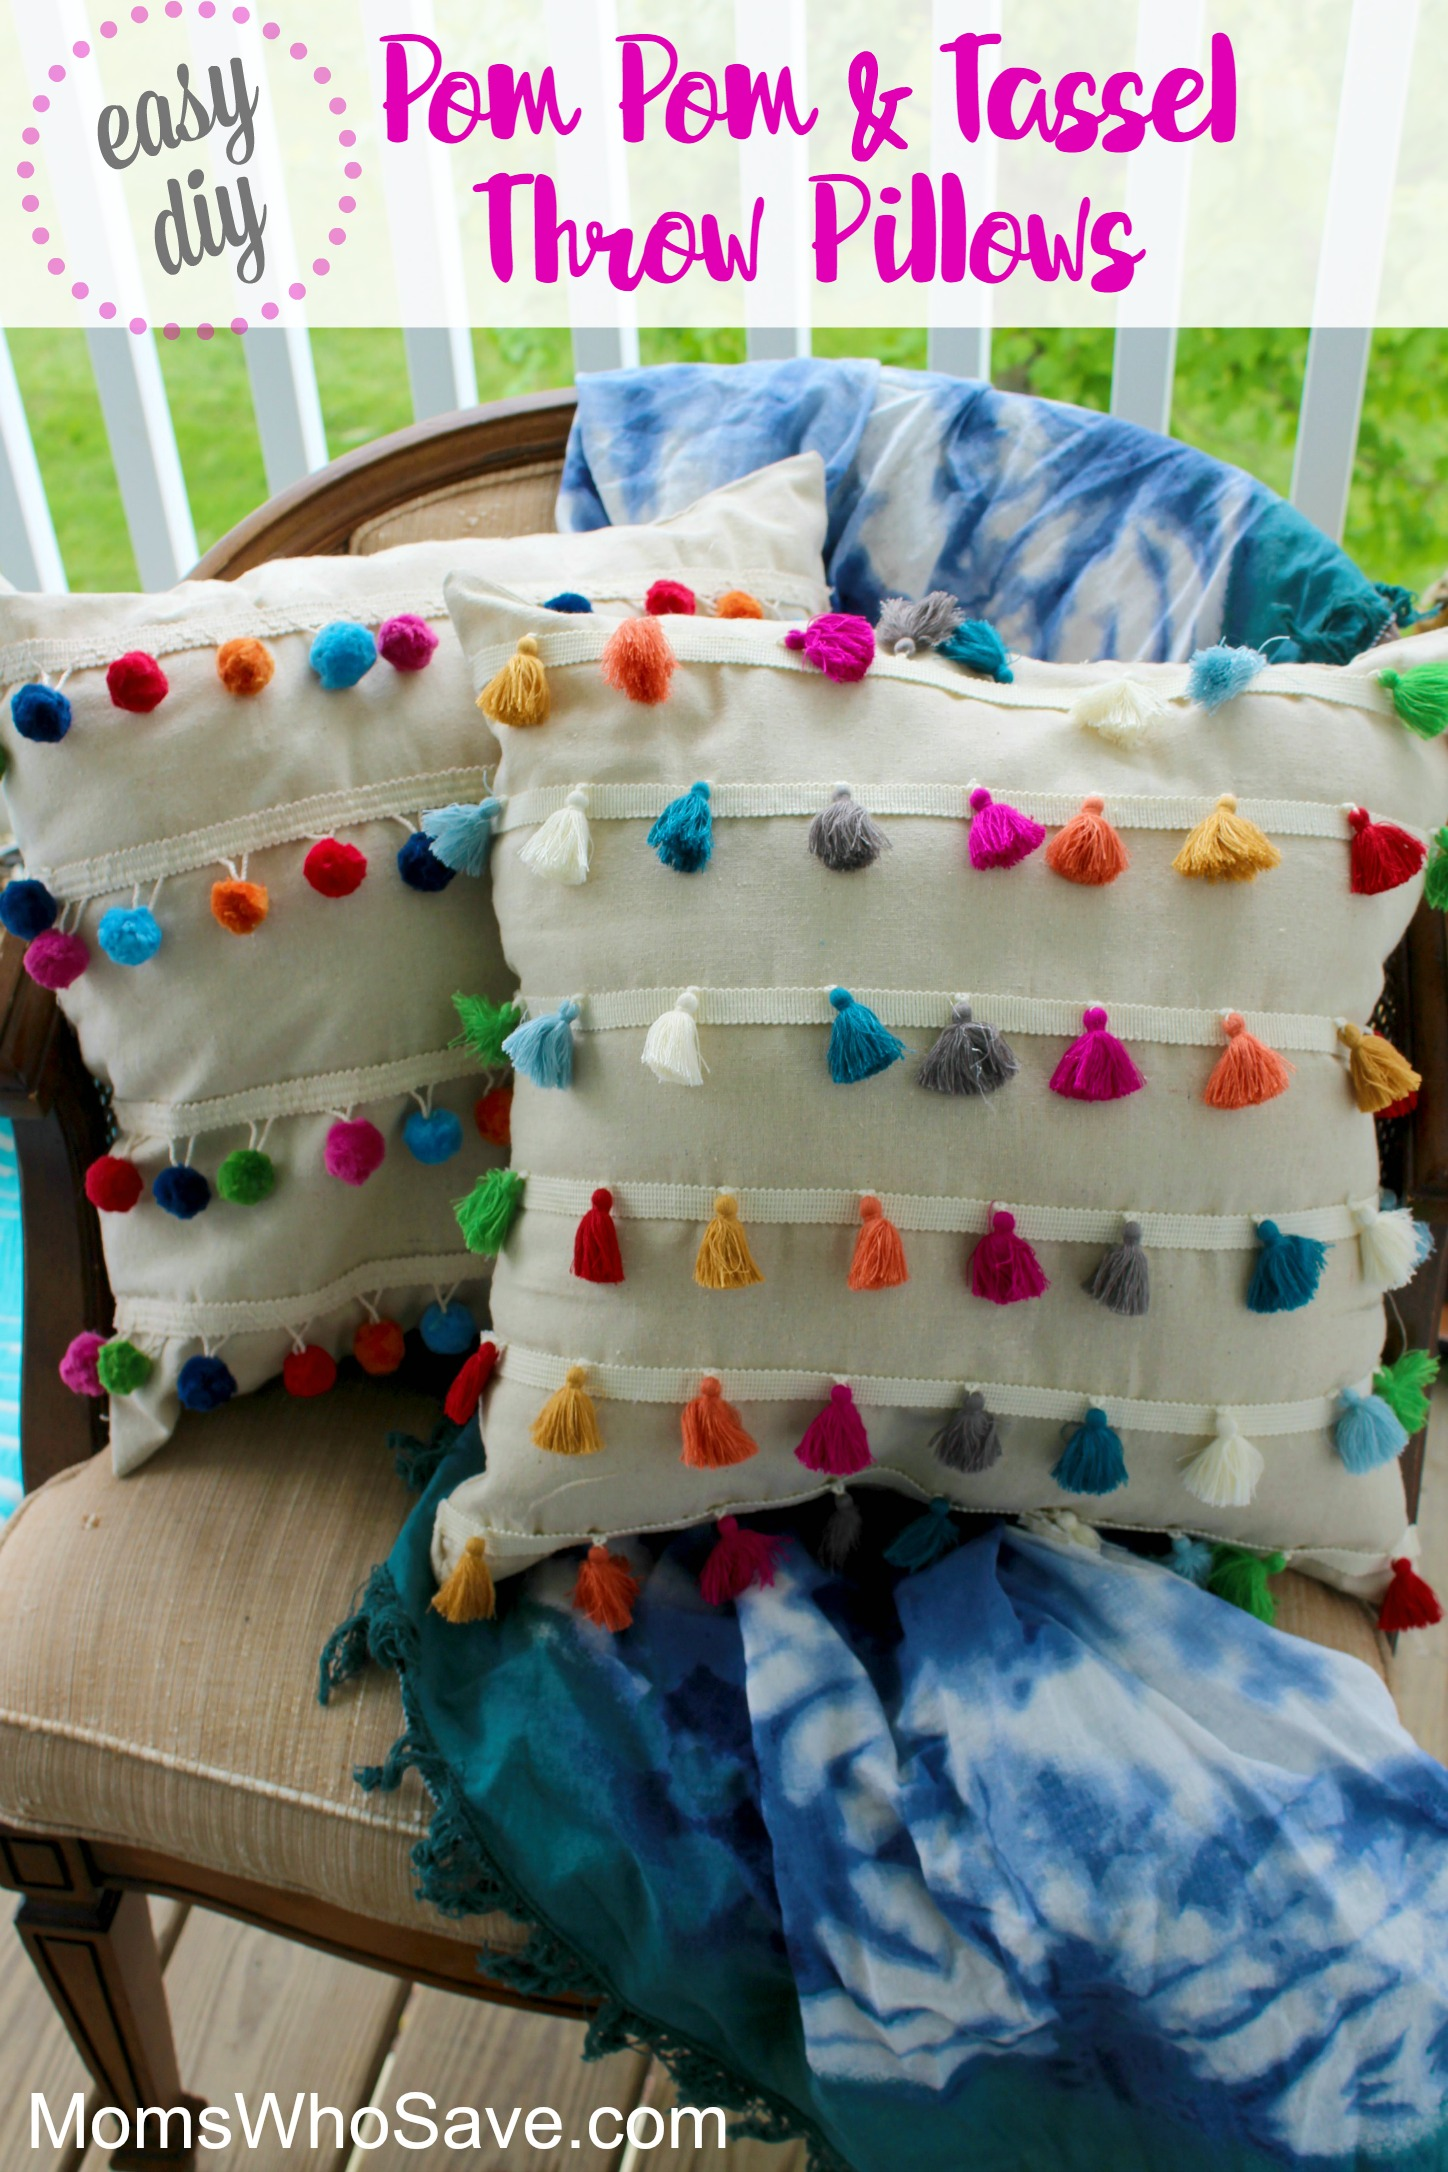 pom pom and tassel throw pillows